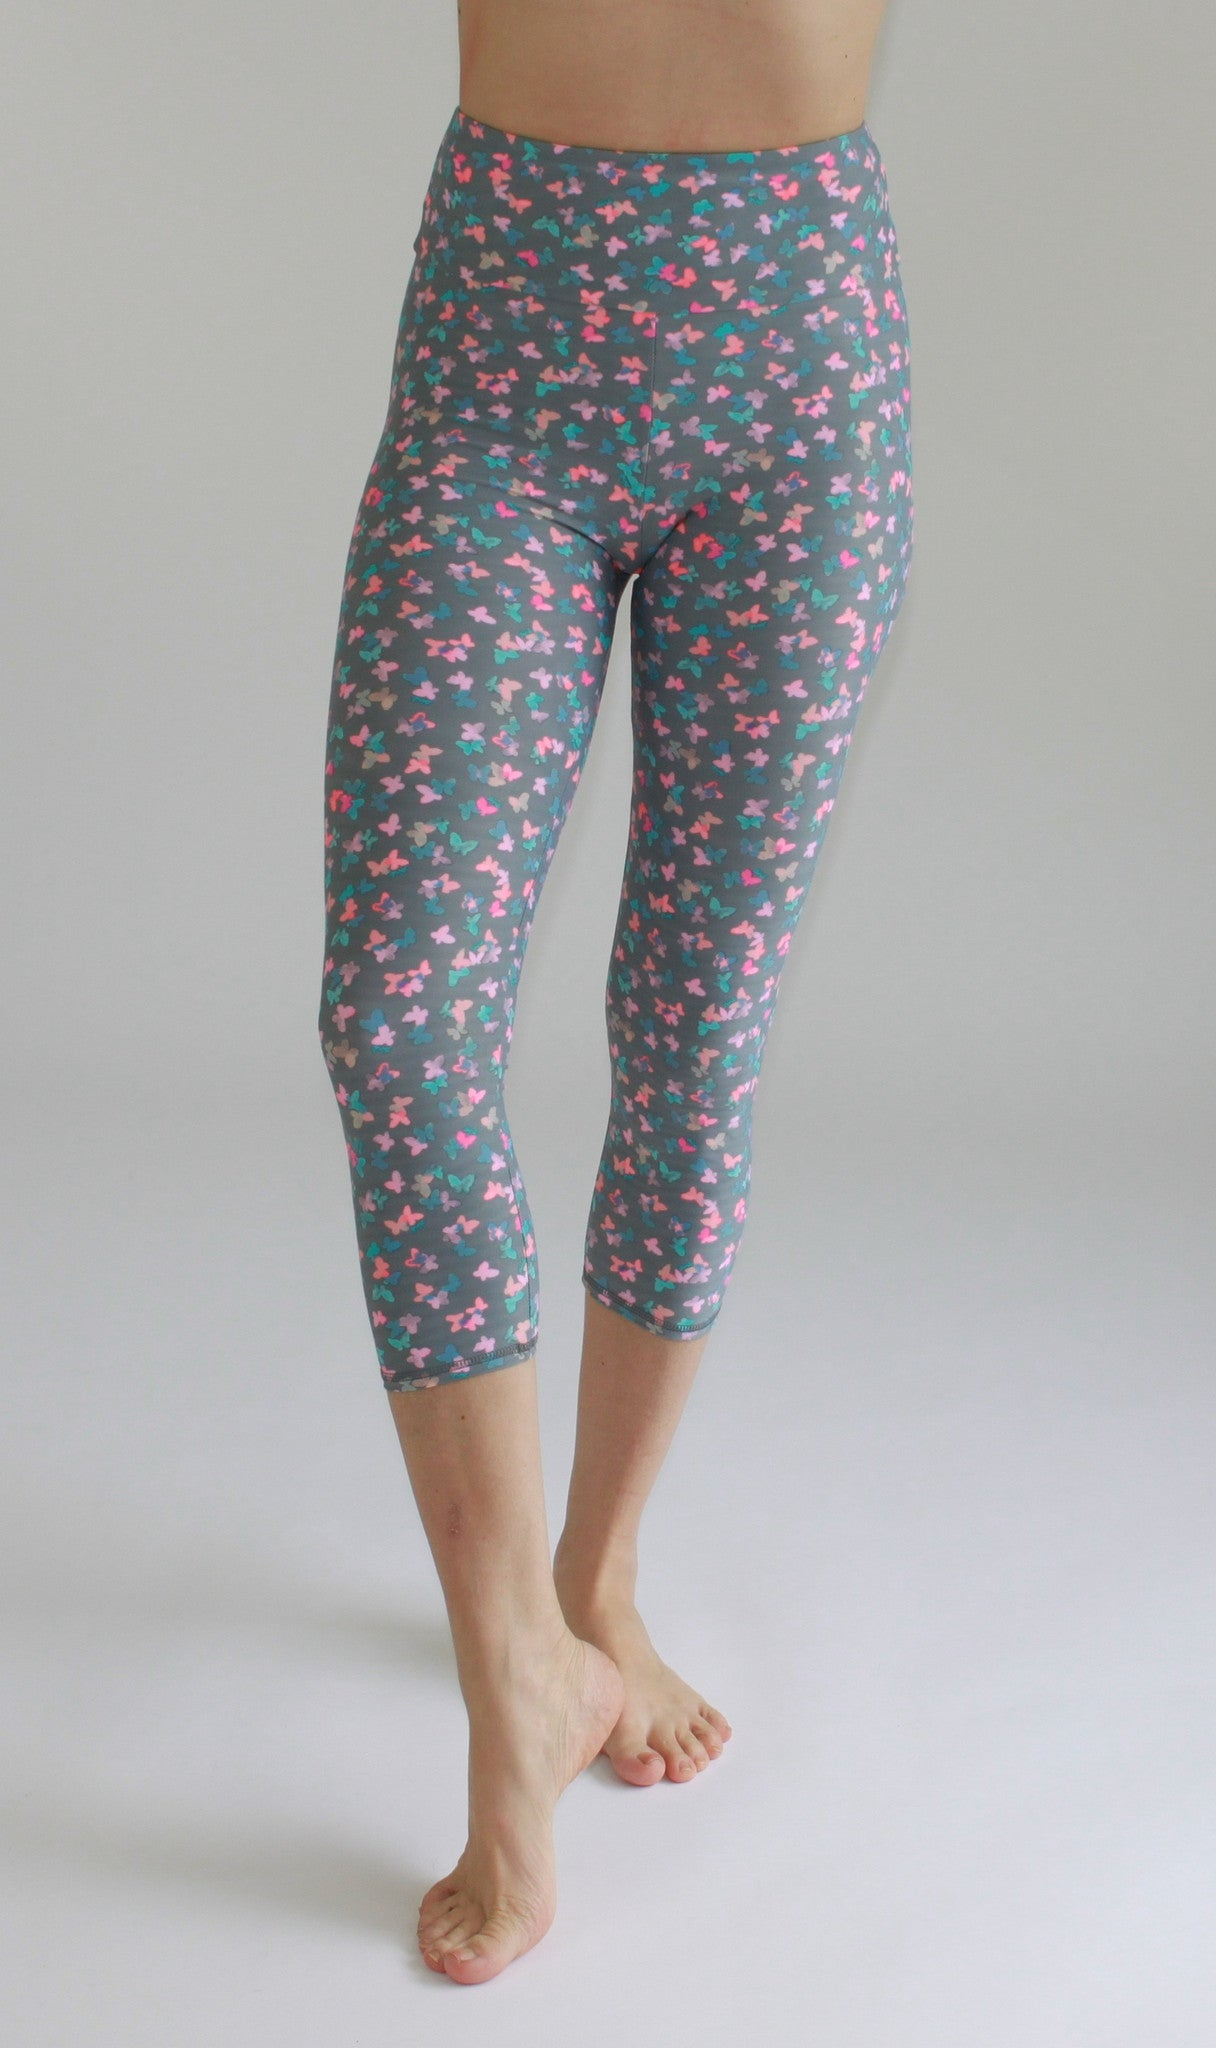 High-Waisted cropped Leggings   Butterfly Print